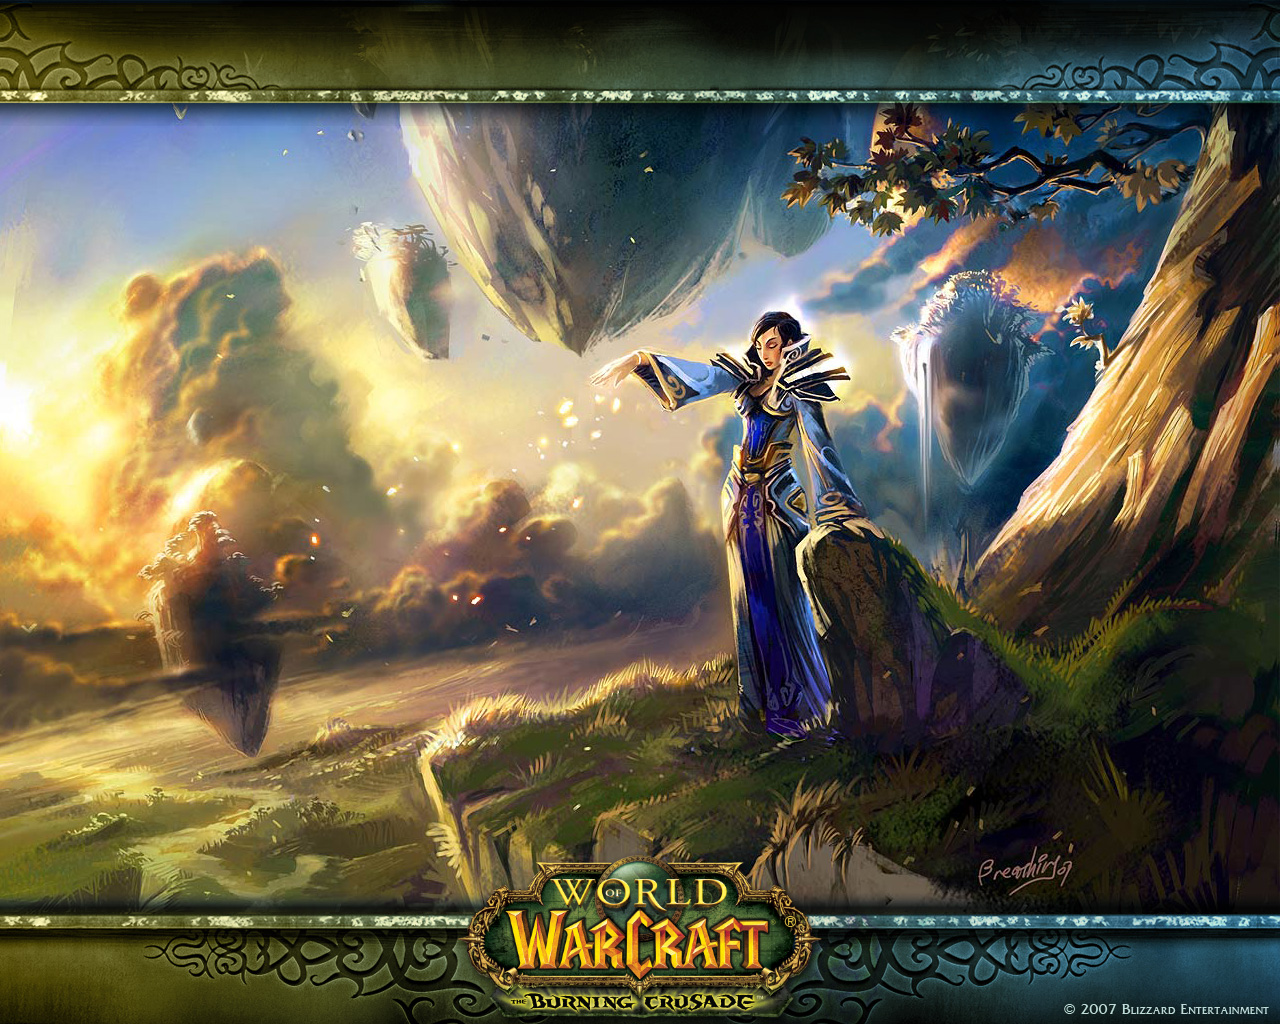 World of Warcraft wallpaper 25